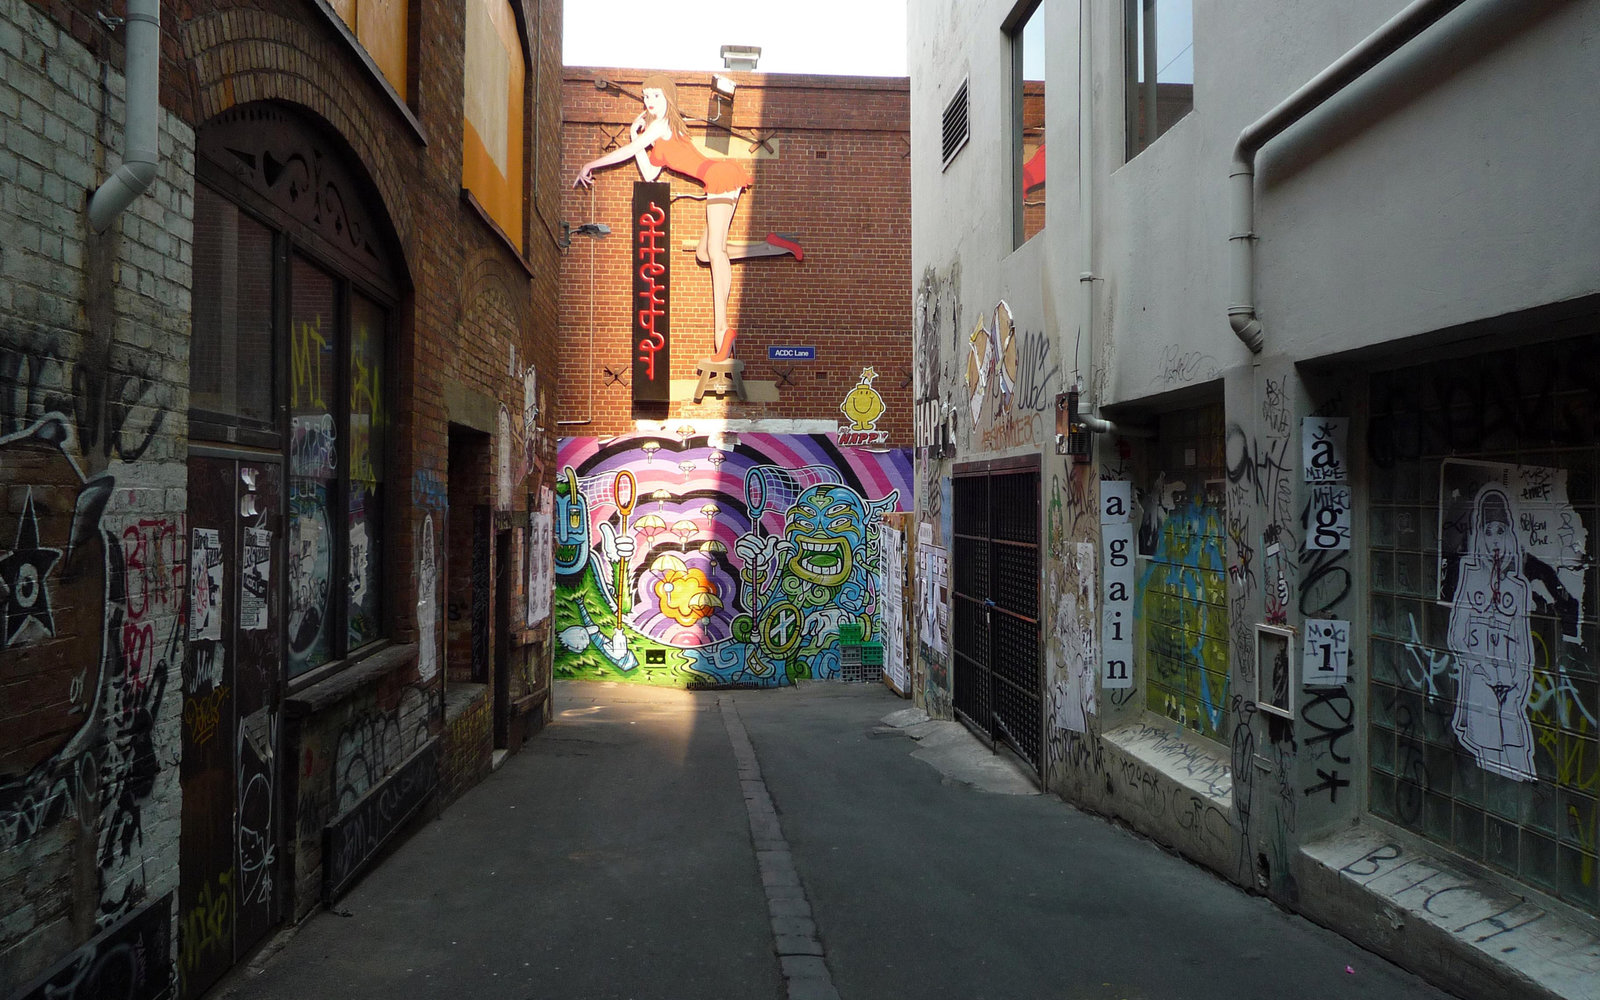 ACDC Lane in Melbourne